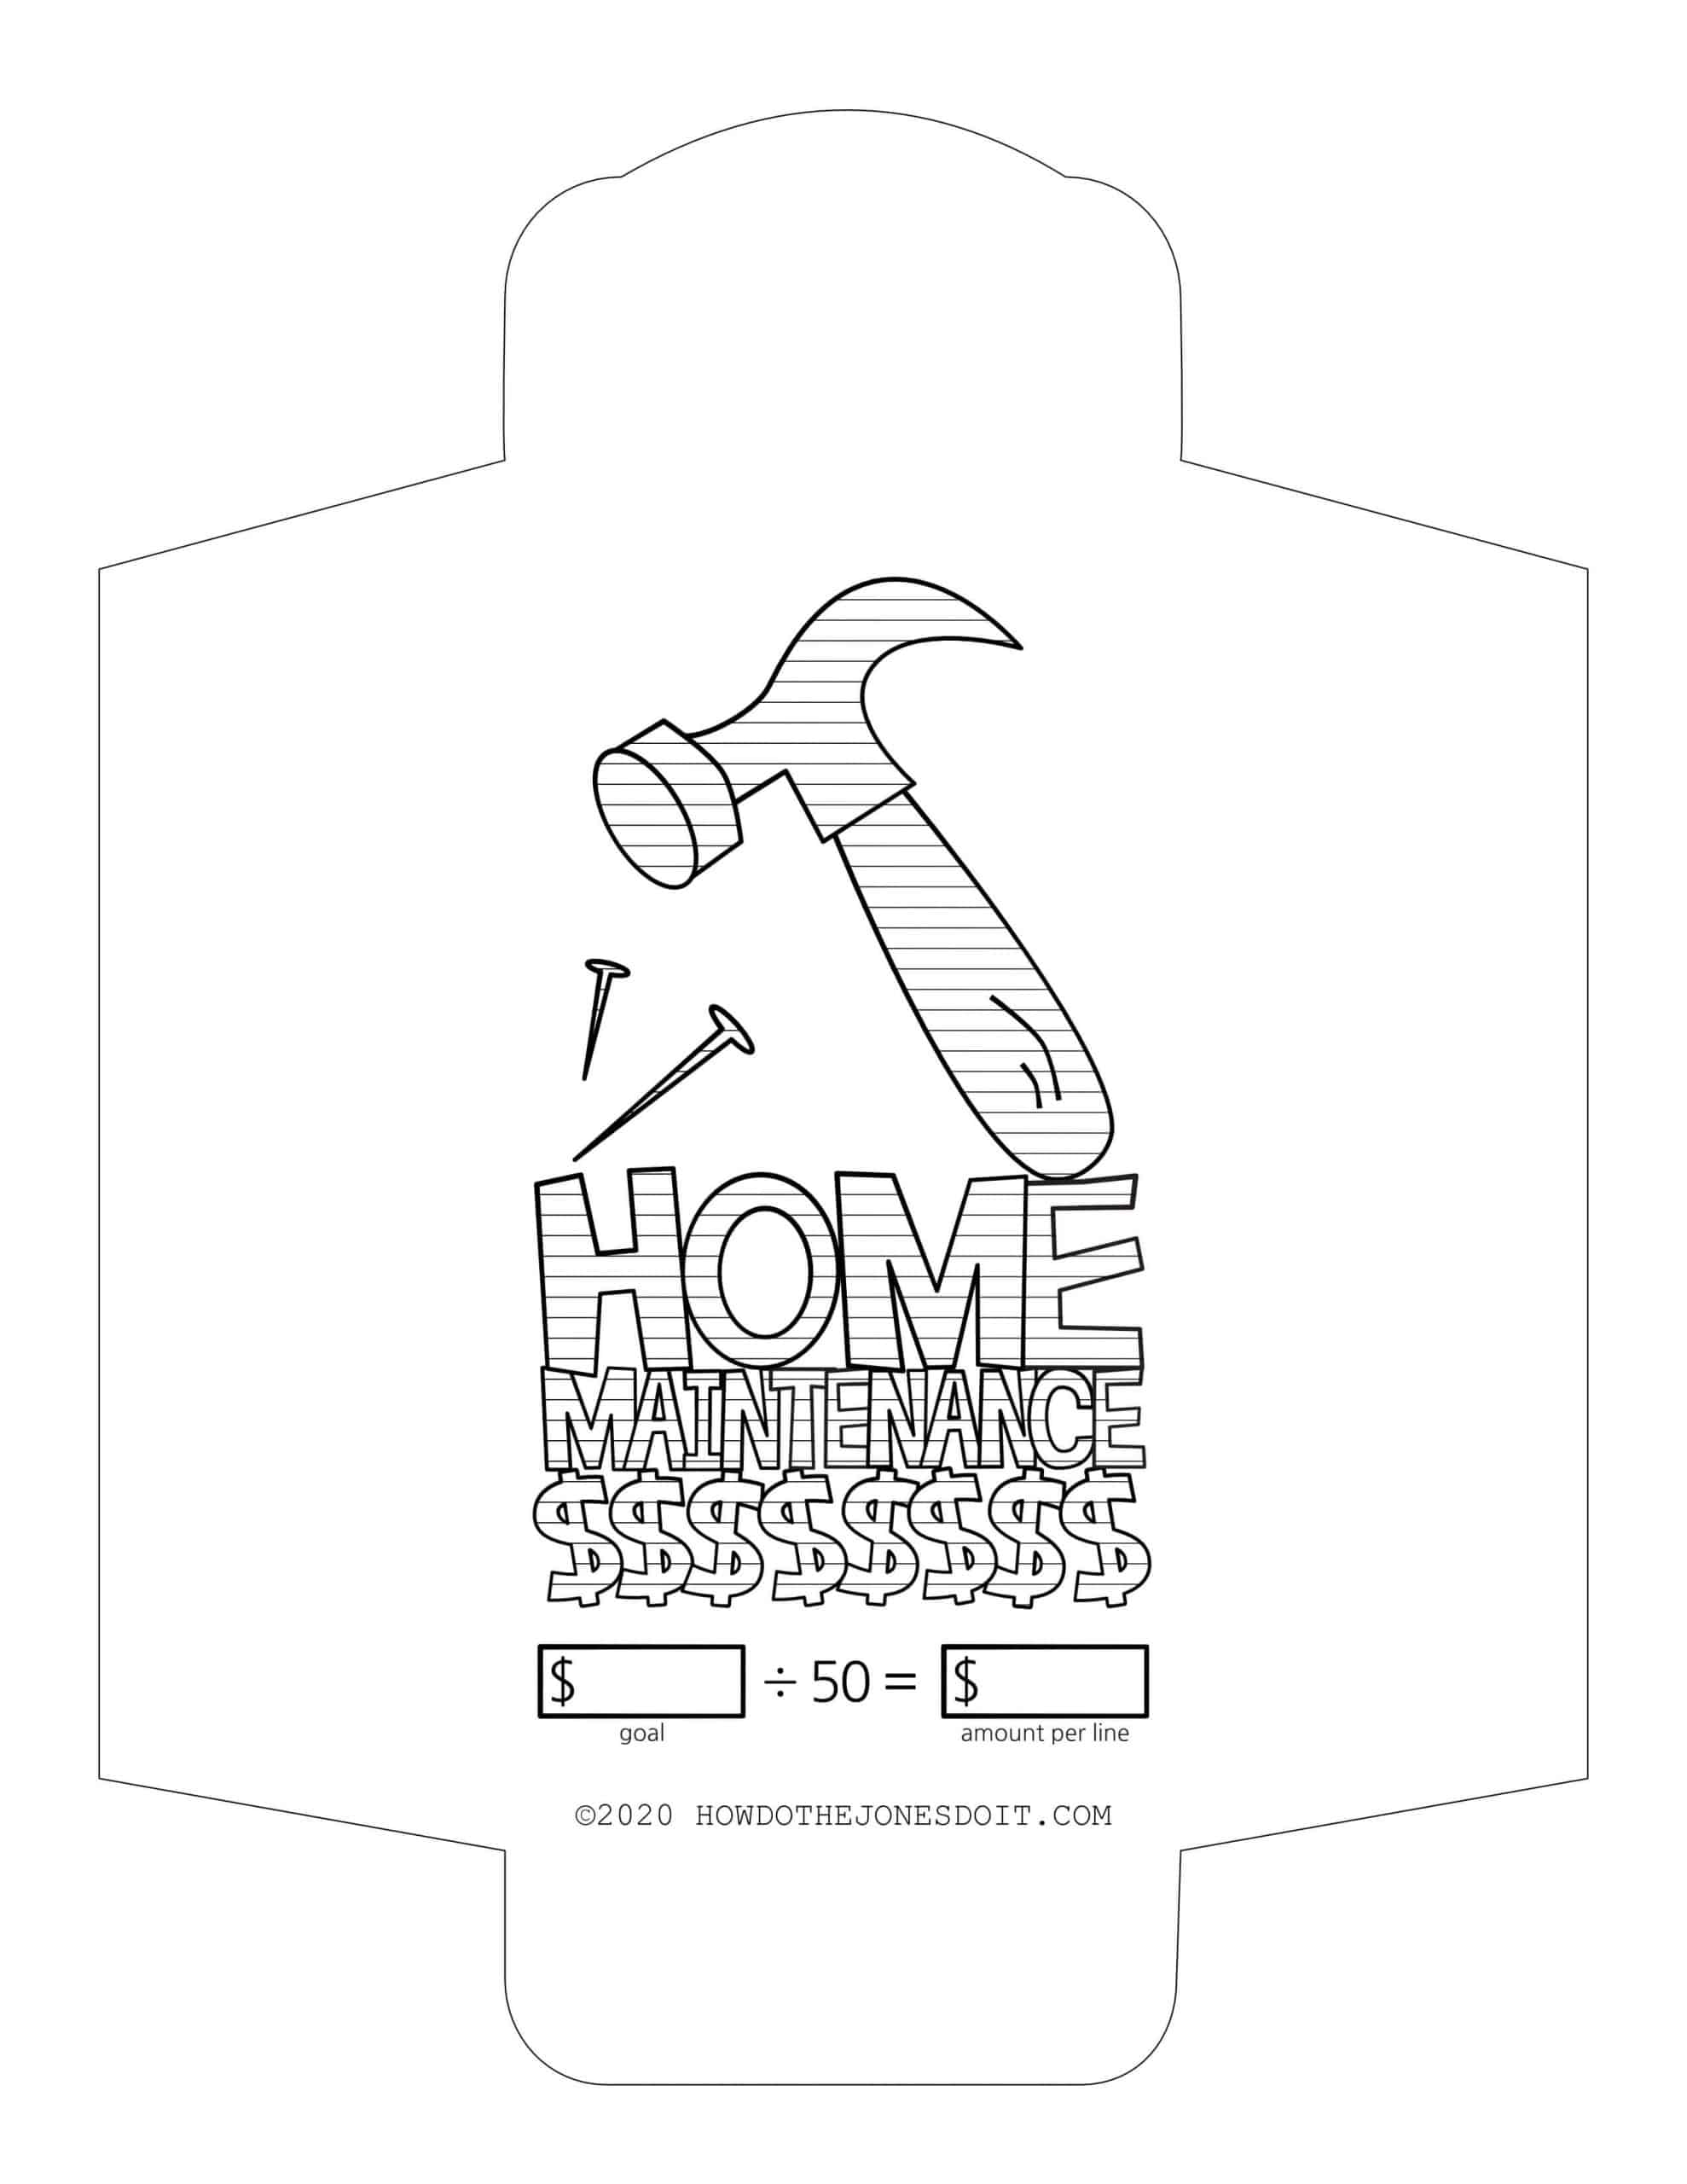 Home Maintenance Sinking Fund Envelope Printable